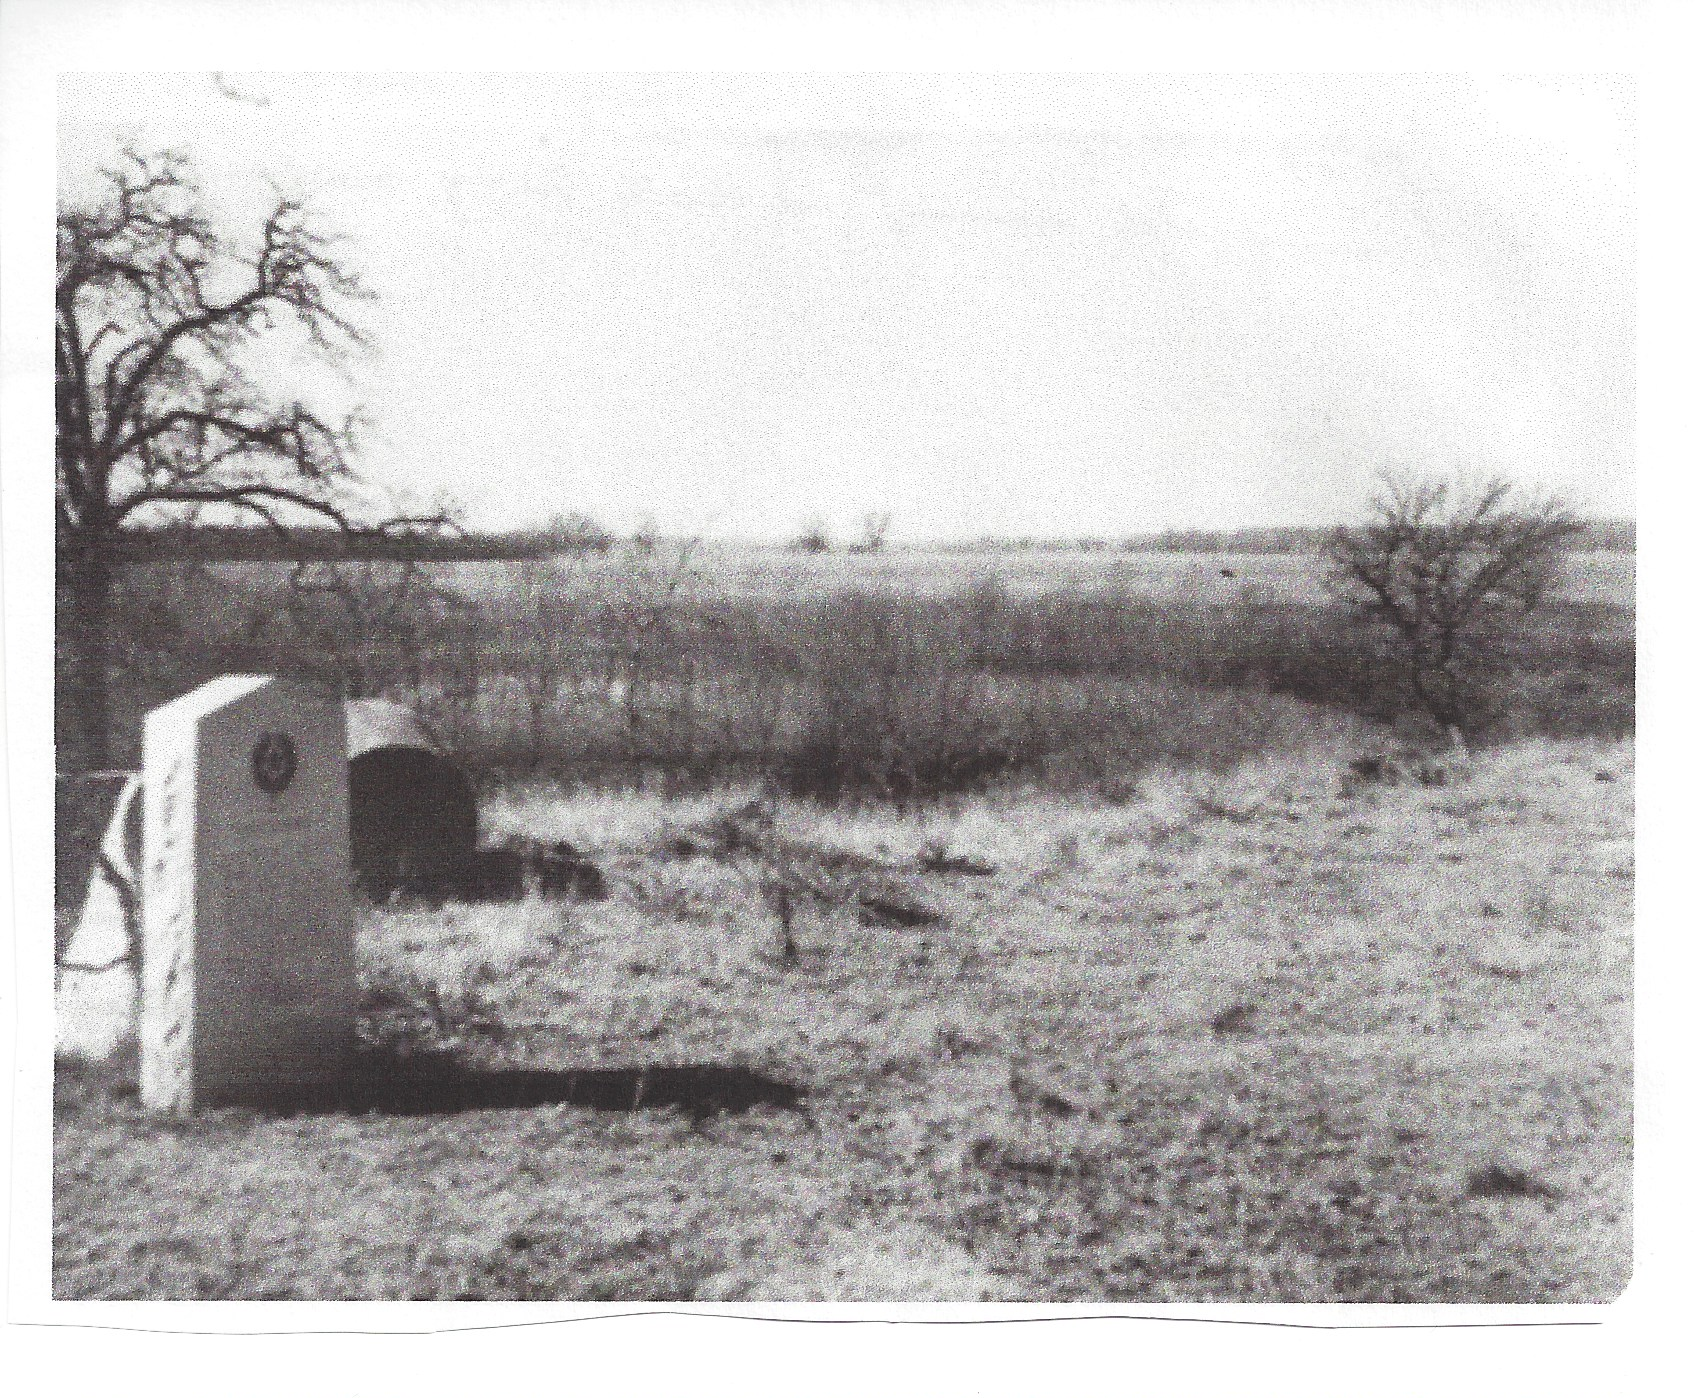 Site of Bird's Fort marker  placed during the Texas Centennial in 1936